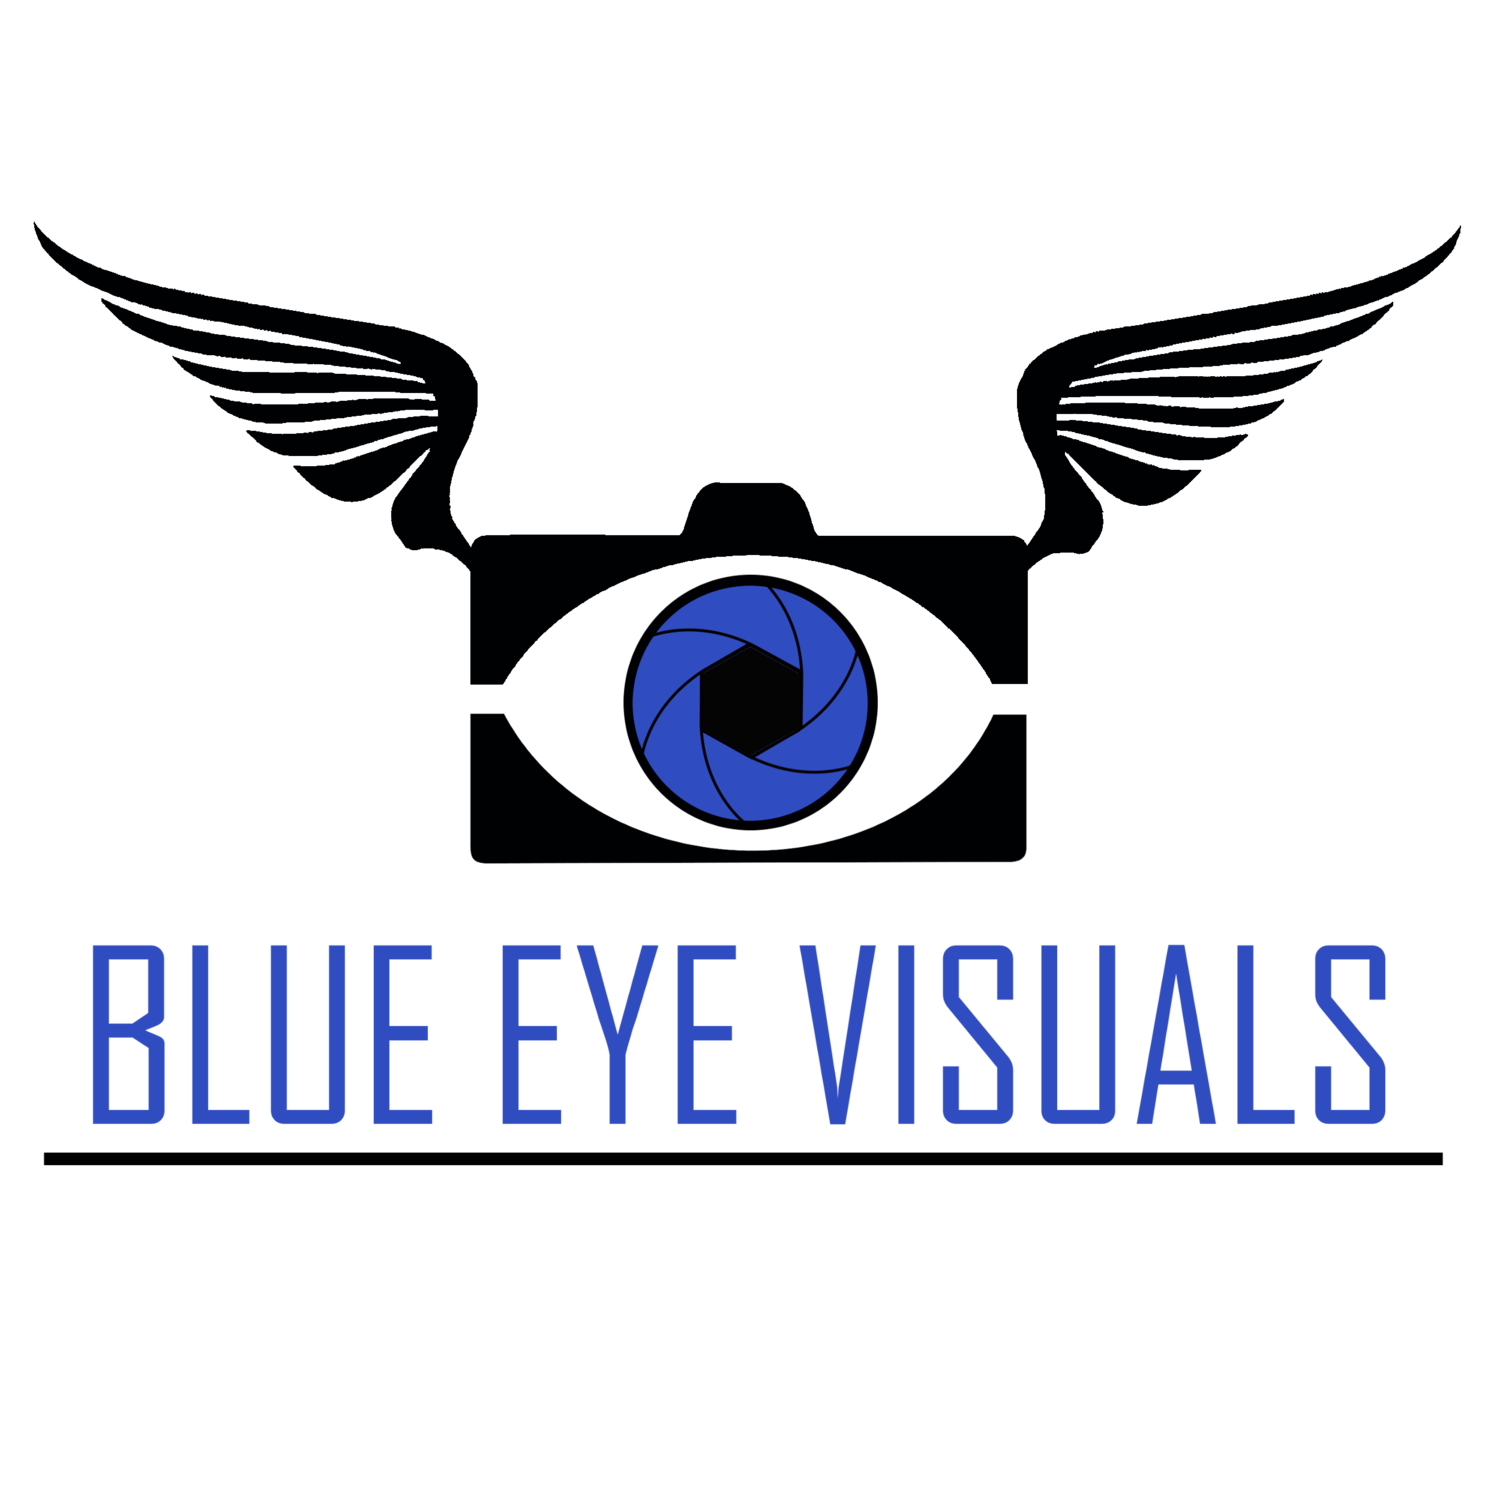 Blue Eye Visuals